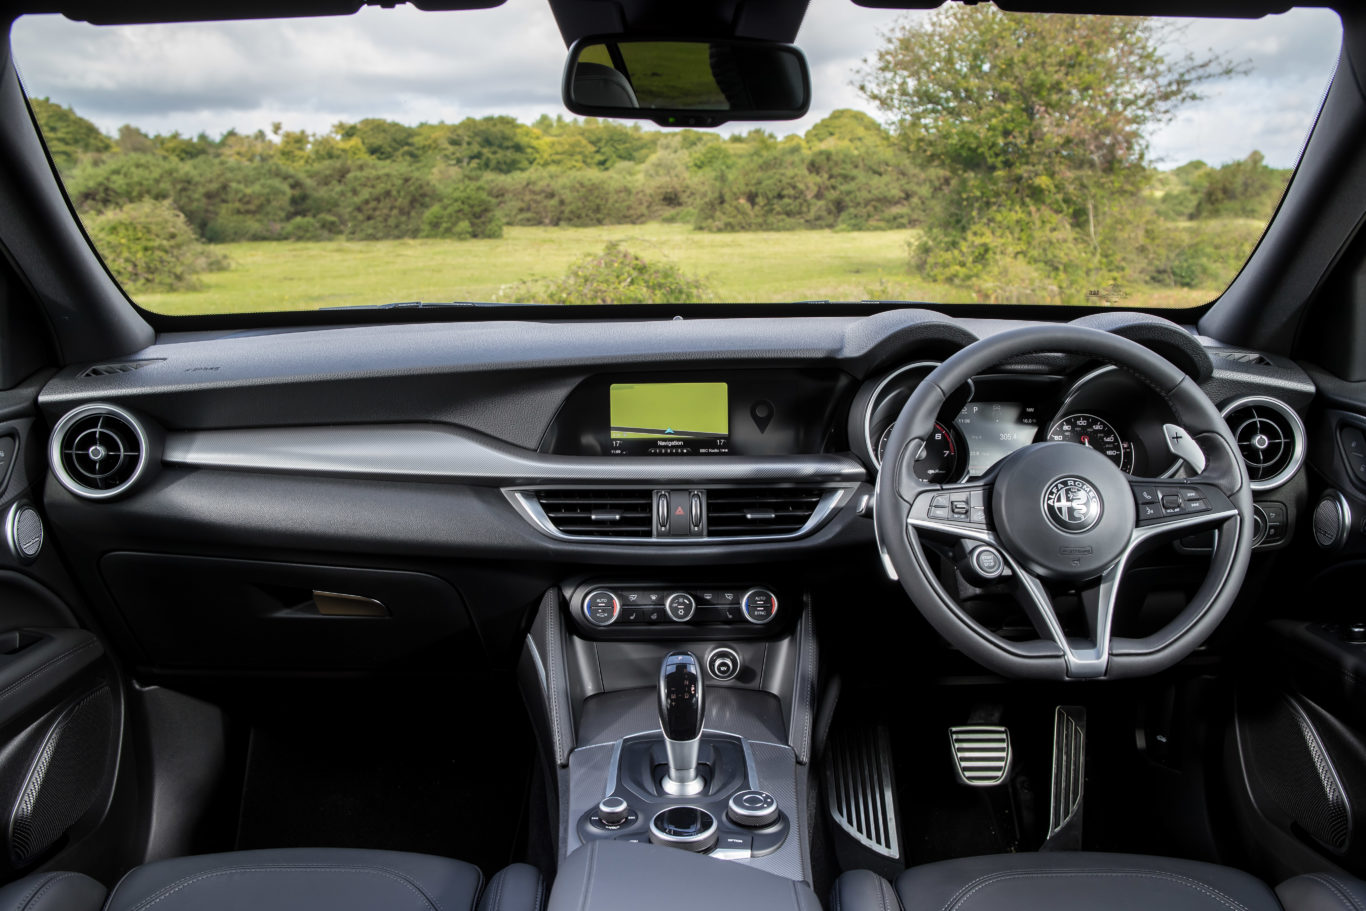 The interior of the Stelvio looks good, but lacks to high-end materials used by rivals